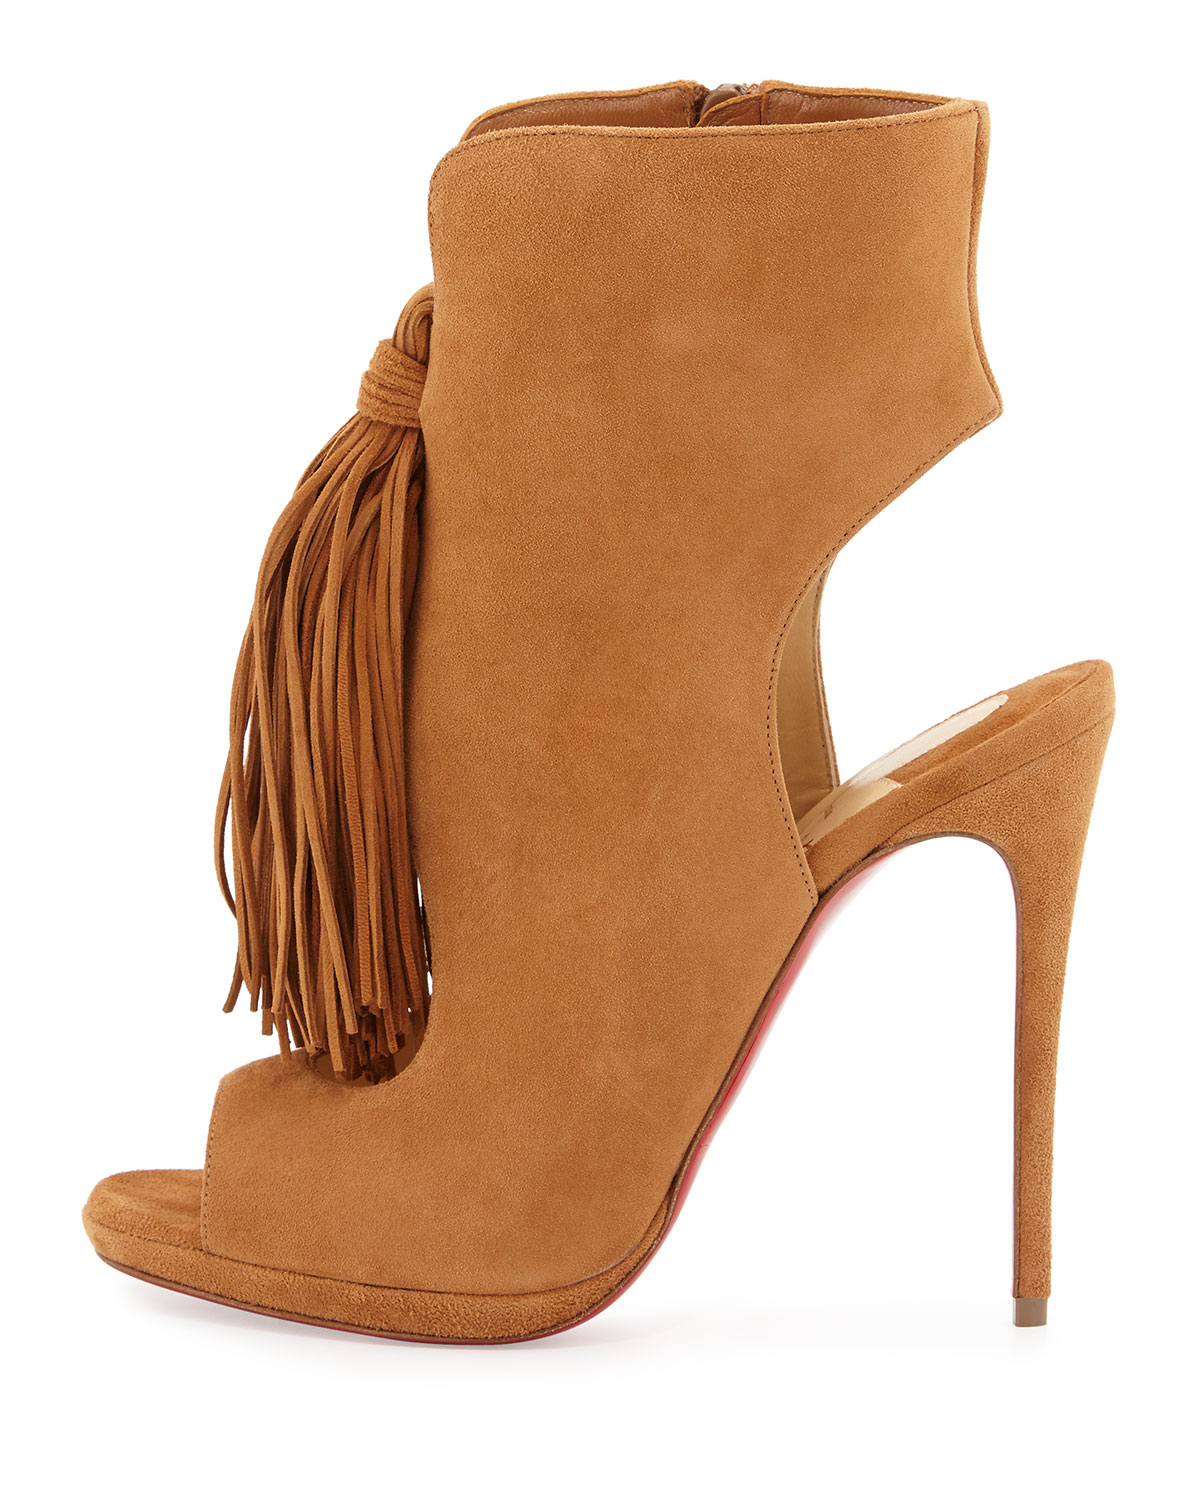 christian louboutin beige suede boots